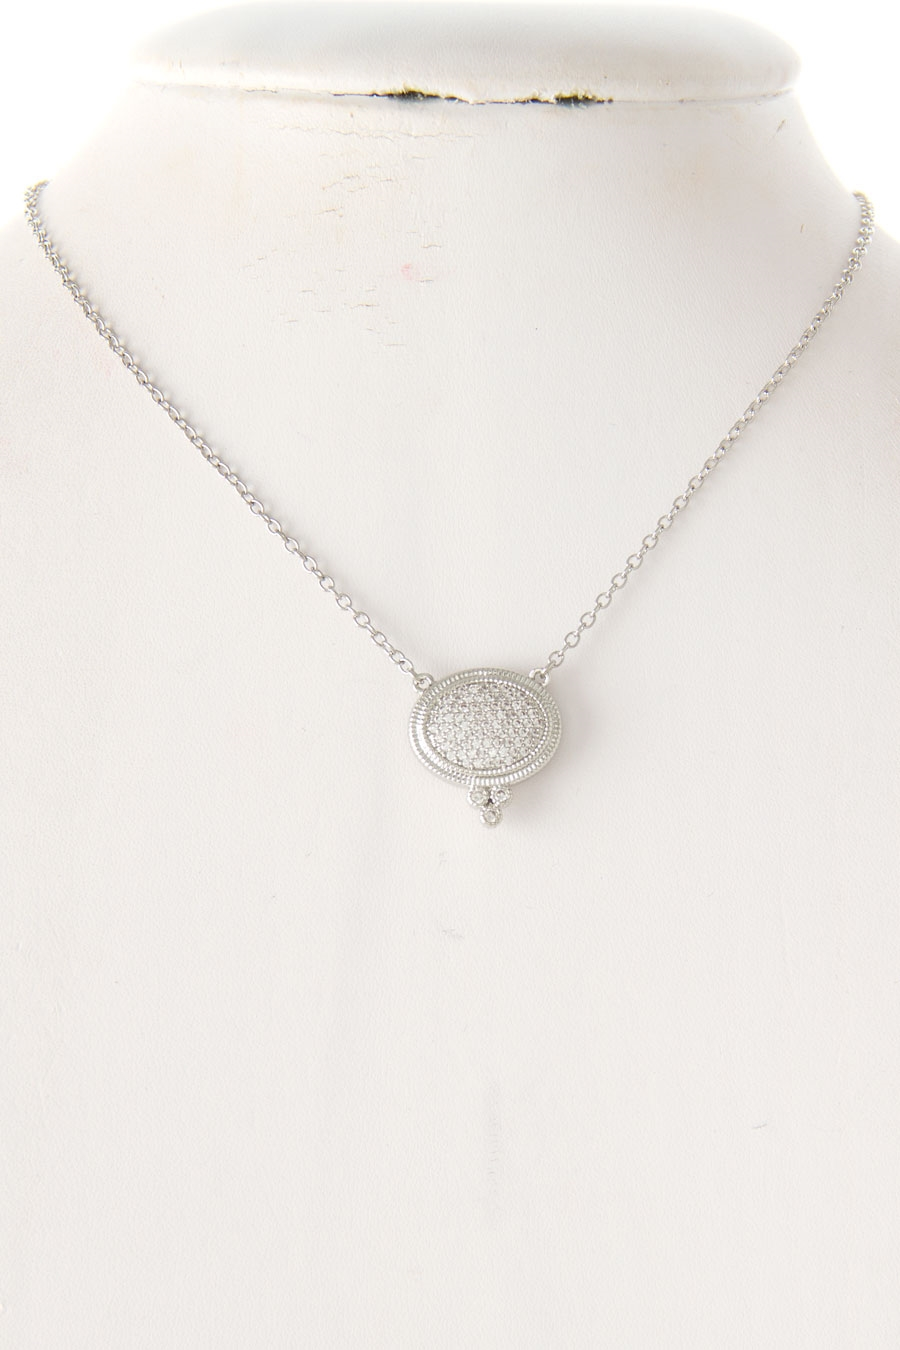 OVAL CRYSTAL PAVE NECLACE - orangeshine.com